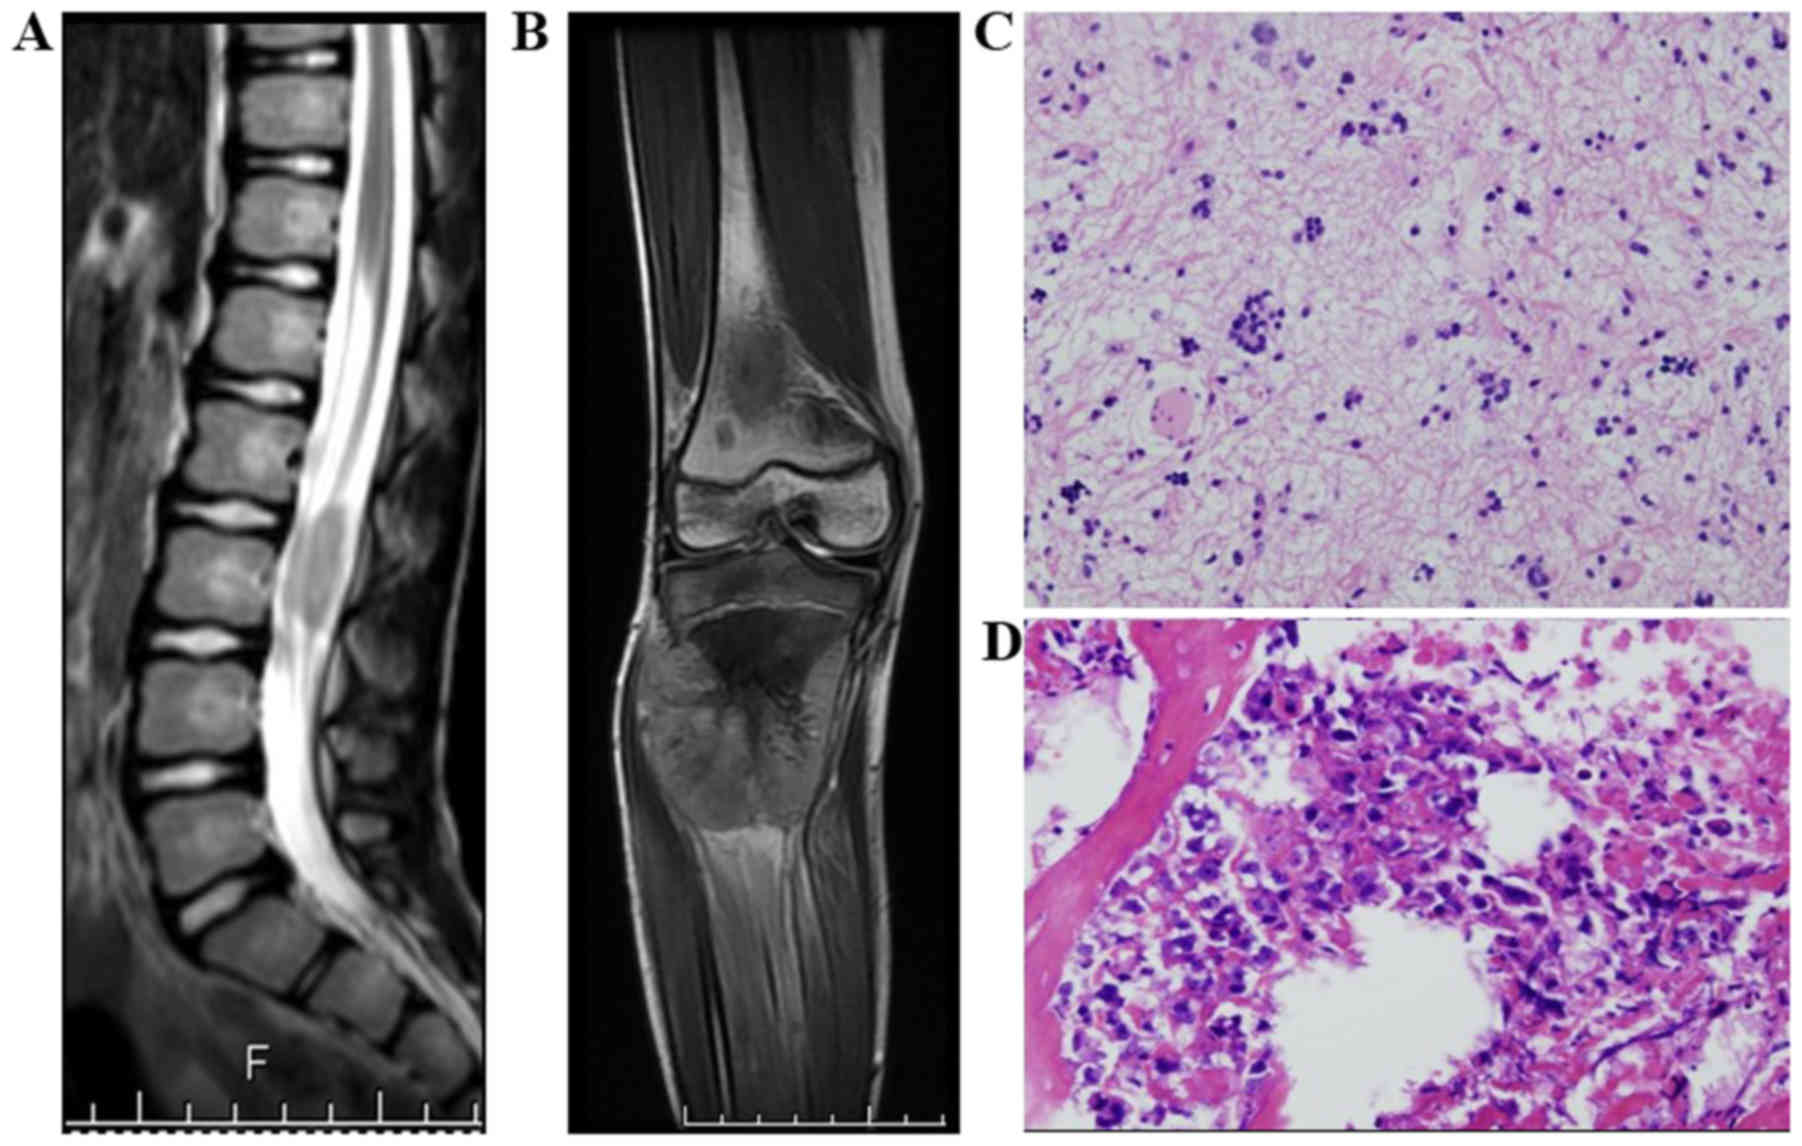 Secondary osteosarcoma in patients previously treated for